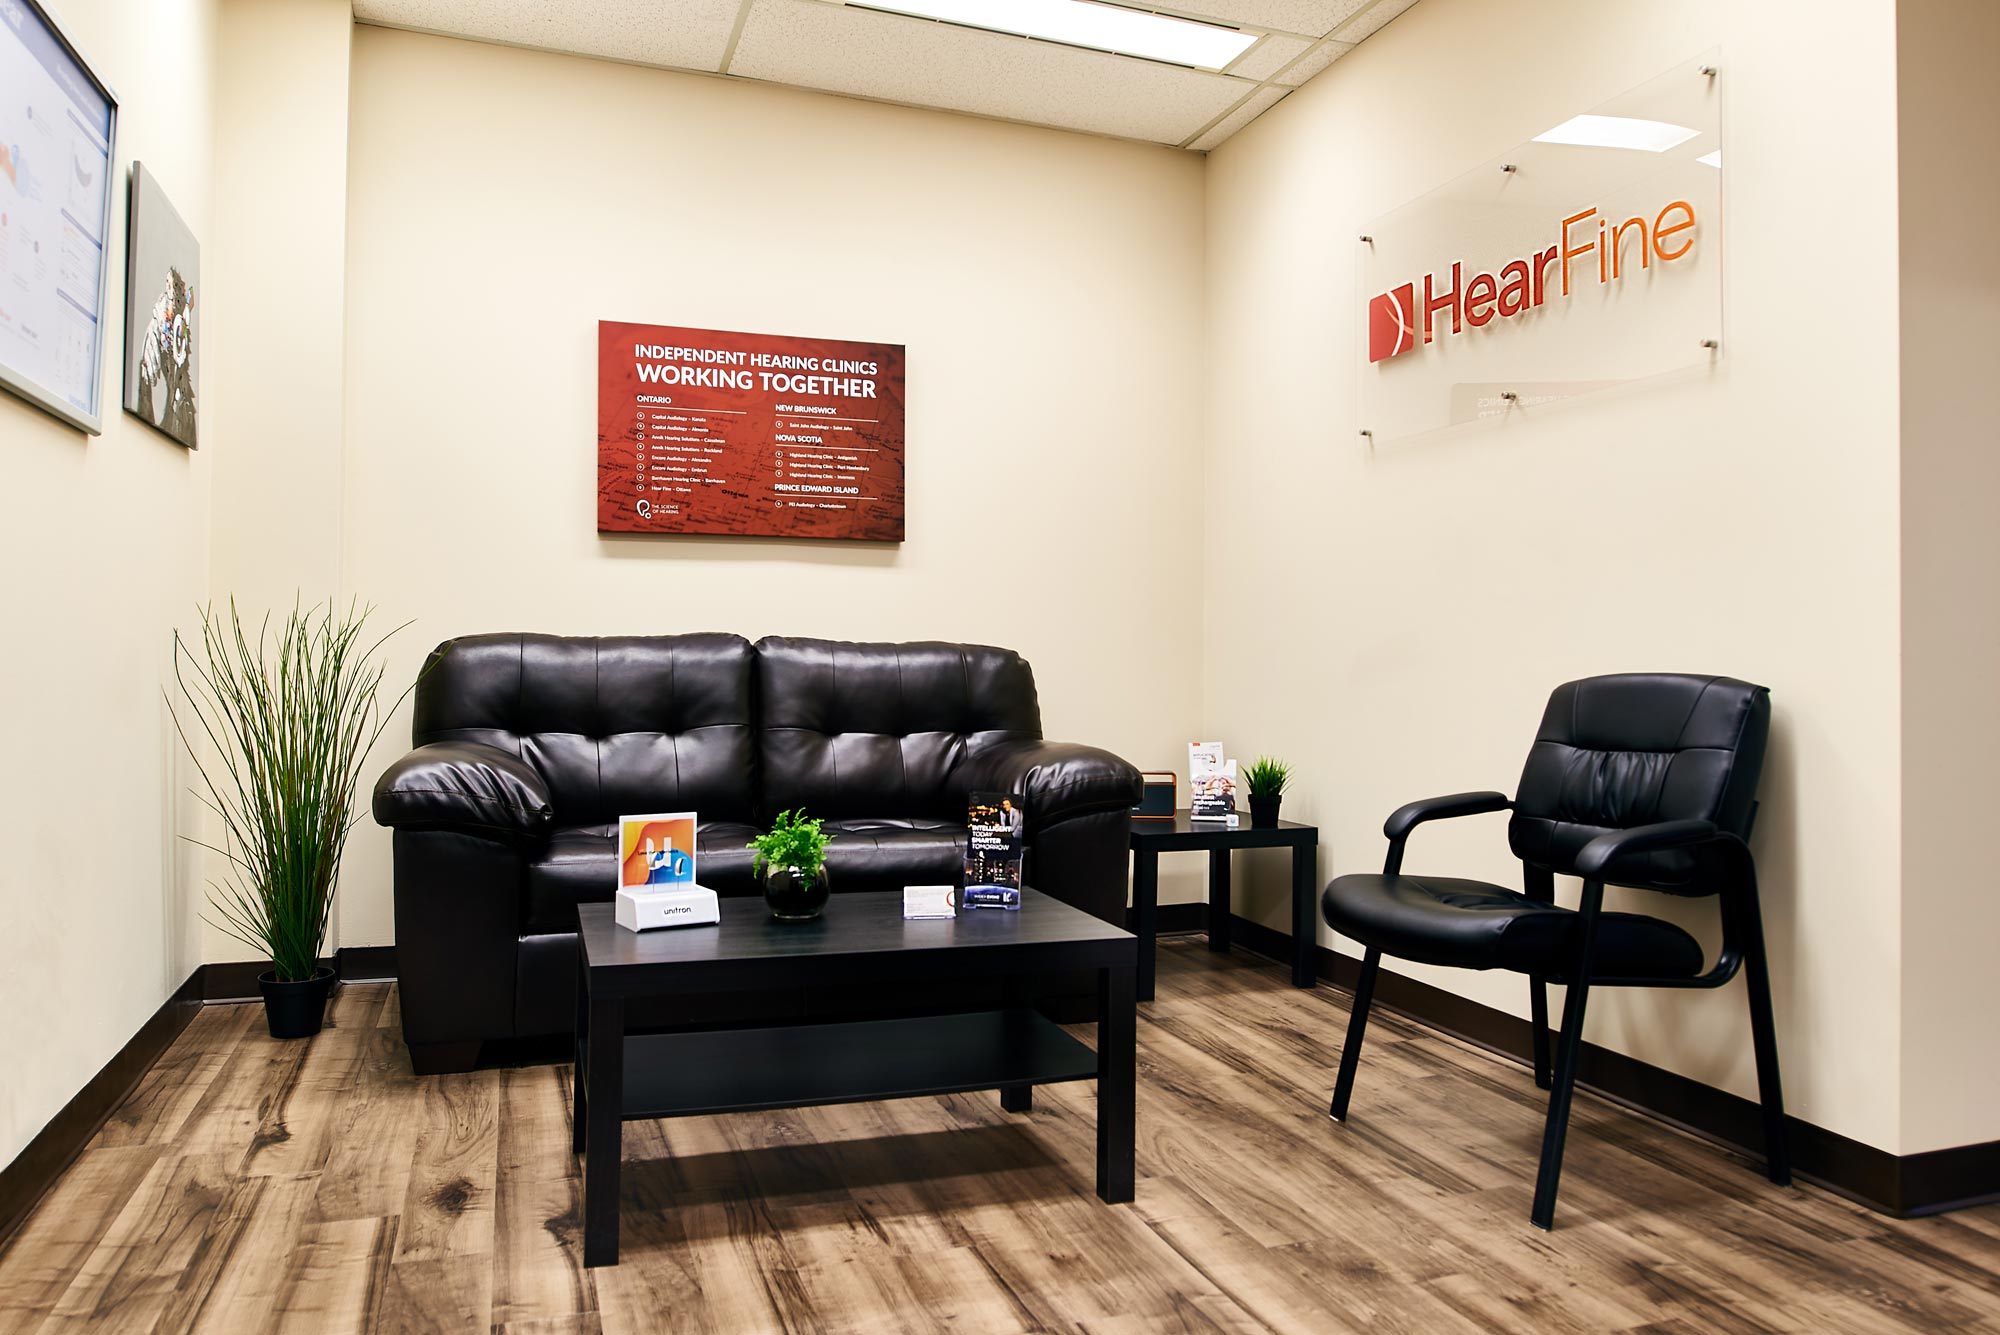 Reception area of Hear Fine, Audiology Clinic in Ottawa